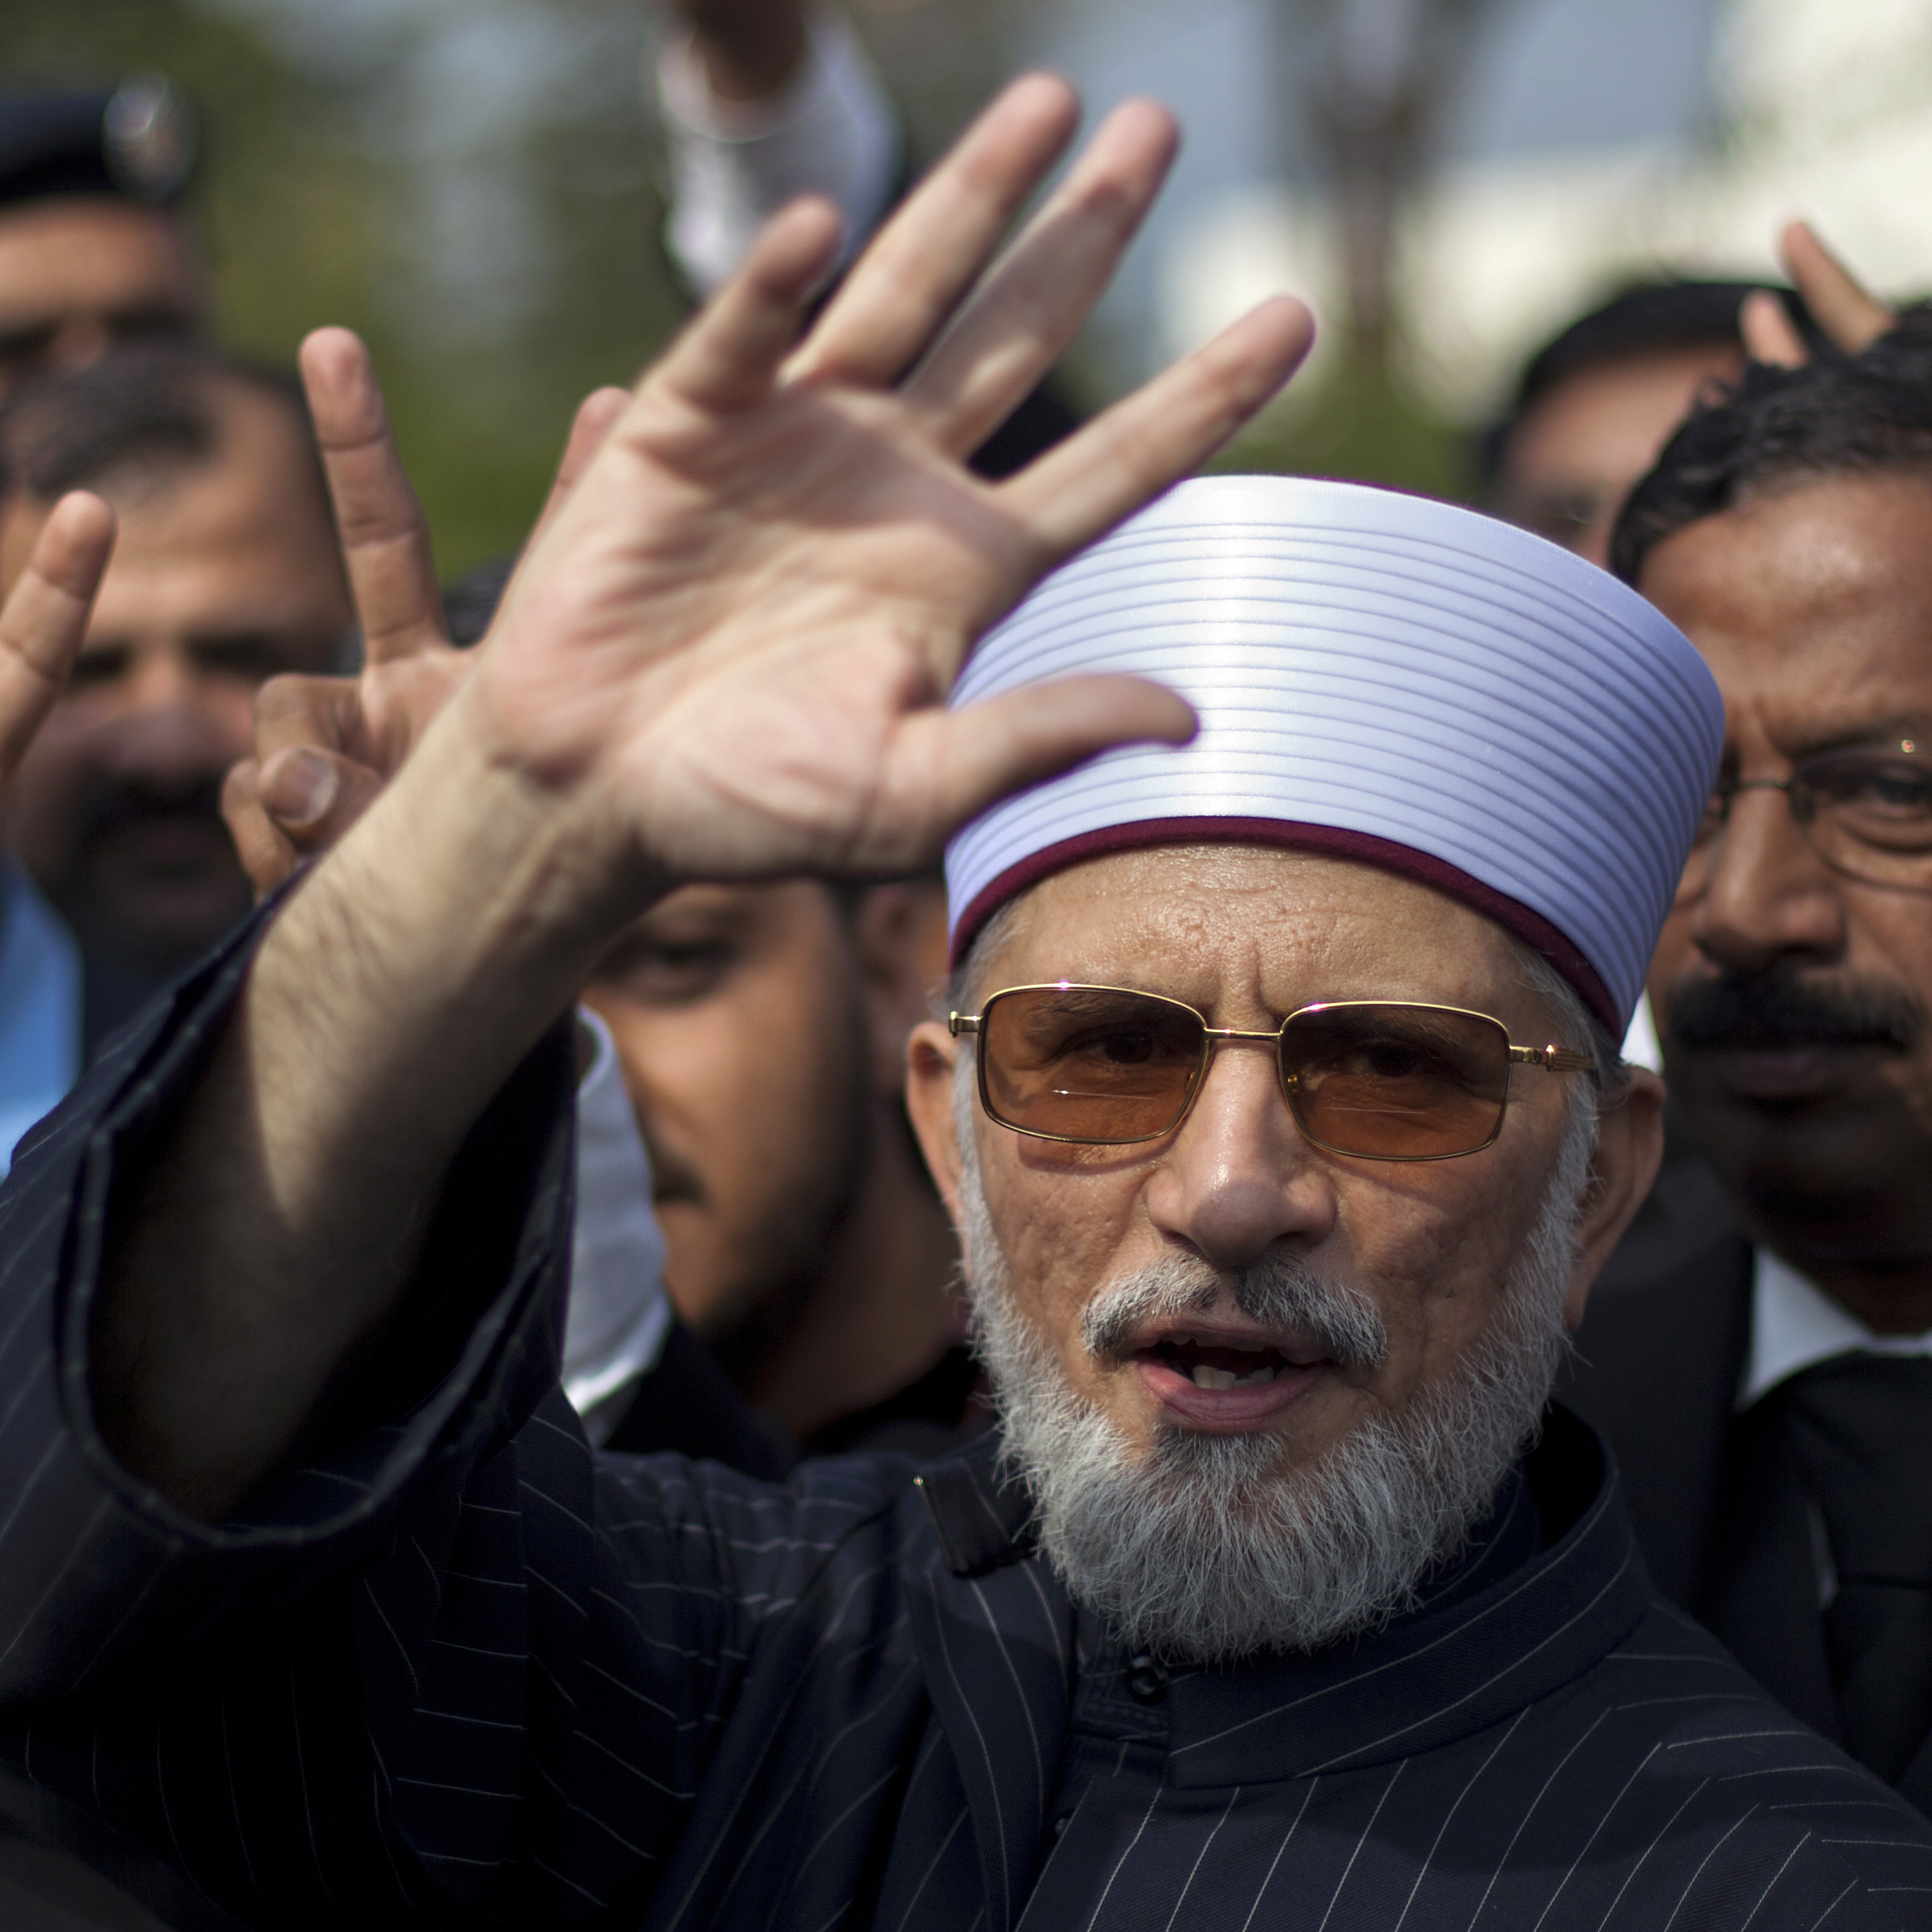 Tahirul Qadri, a dual national of Pakistan and Canada, waves to his supporters as he leaves the Supreme Court in Islamabad, Pakistan on Feb. 12, 2013.